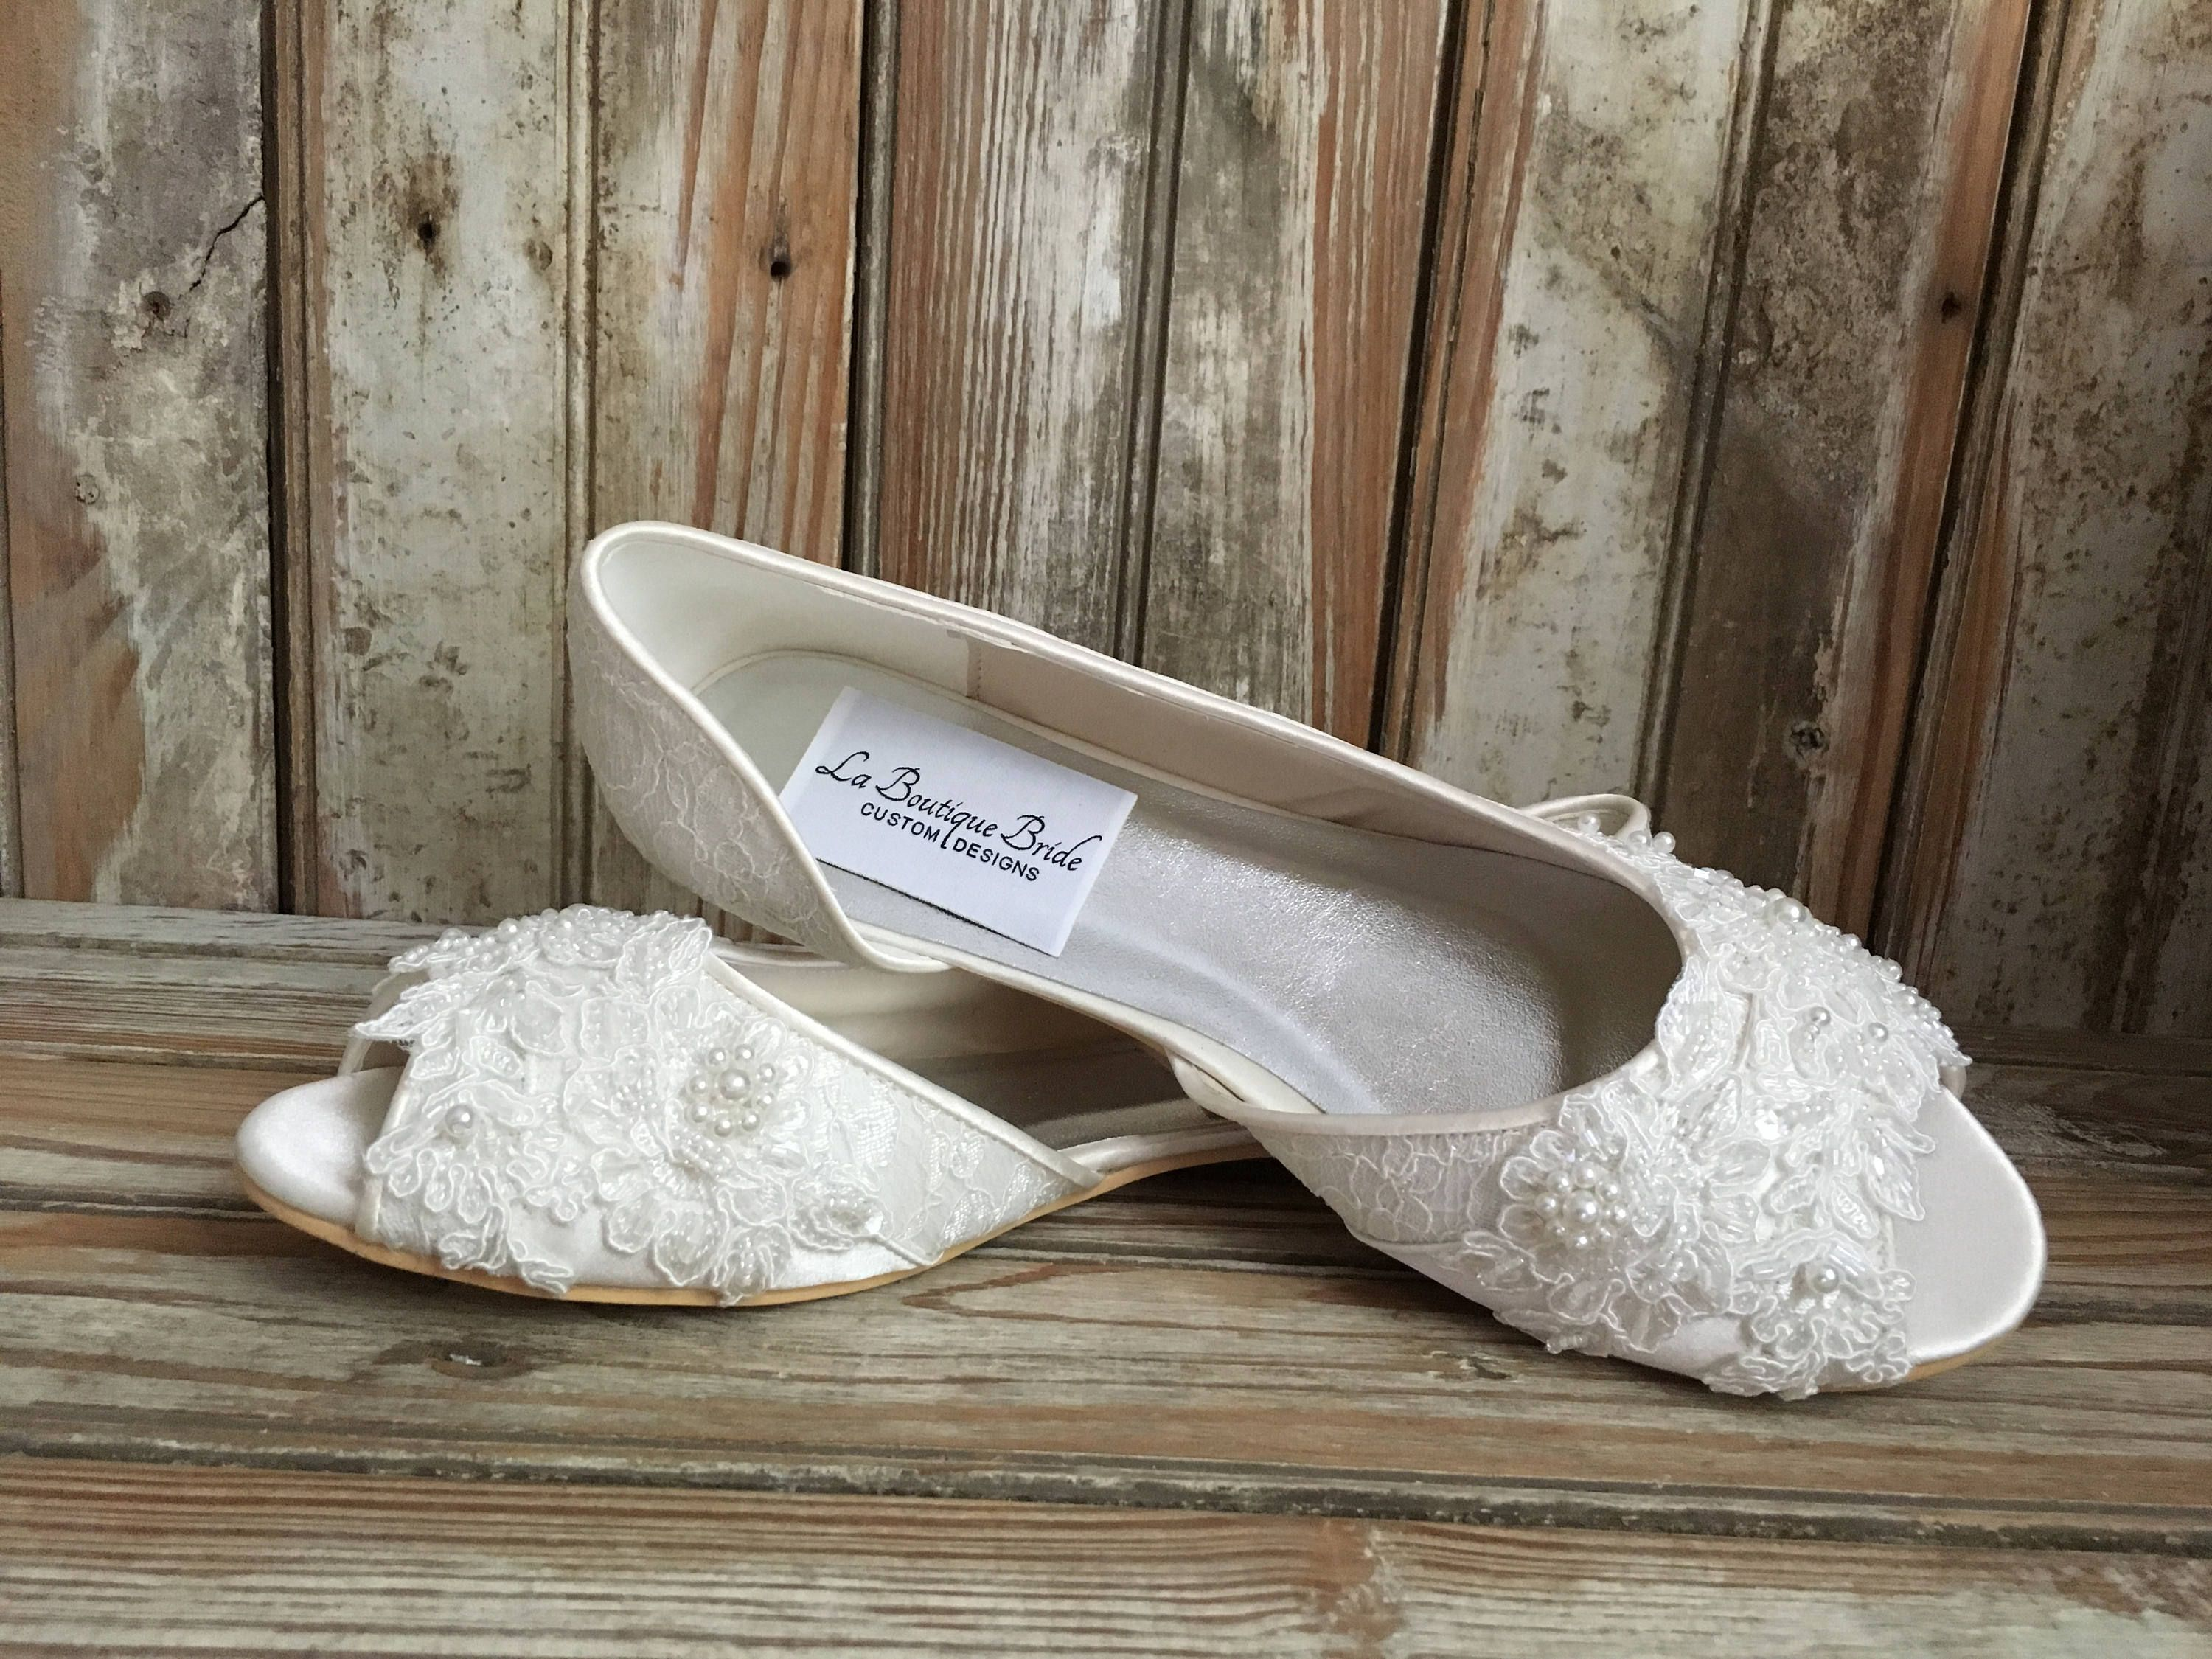 1e50e455aef2d Bridal Ballet Flat Shoe Open toe satin and lace covered flat with ...